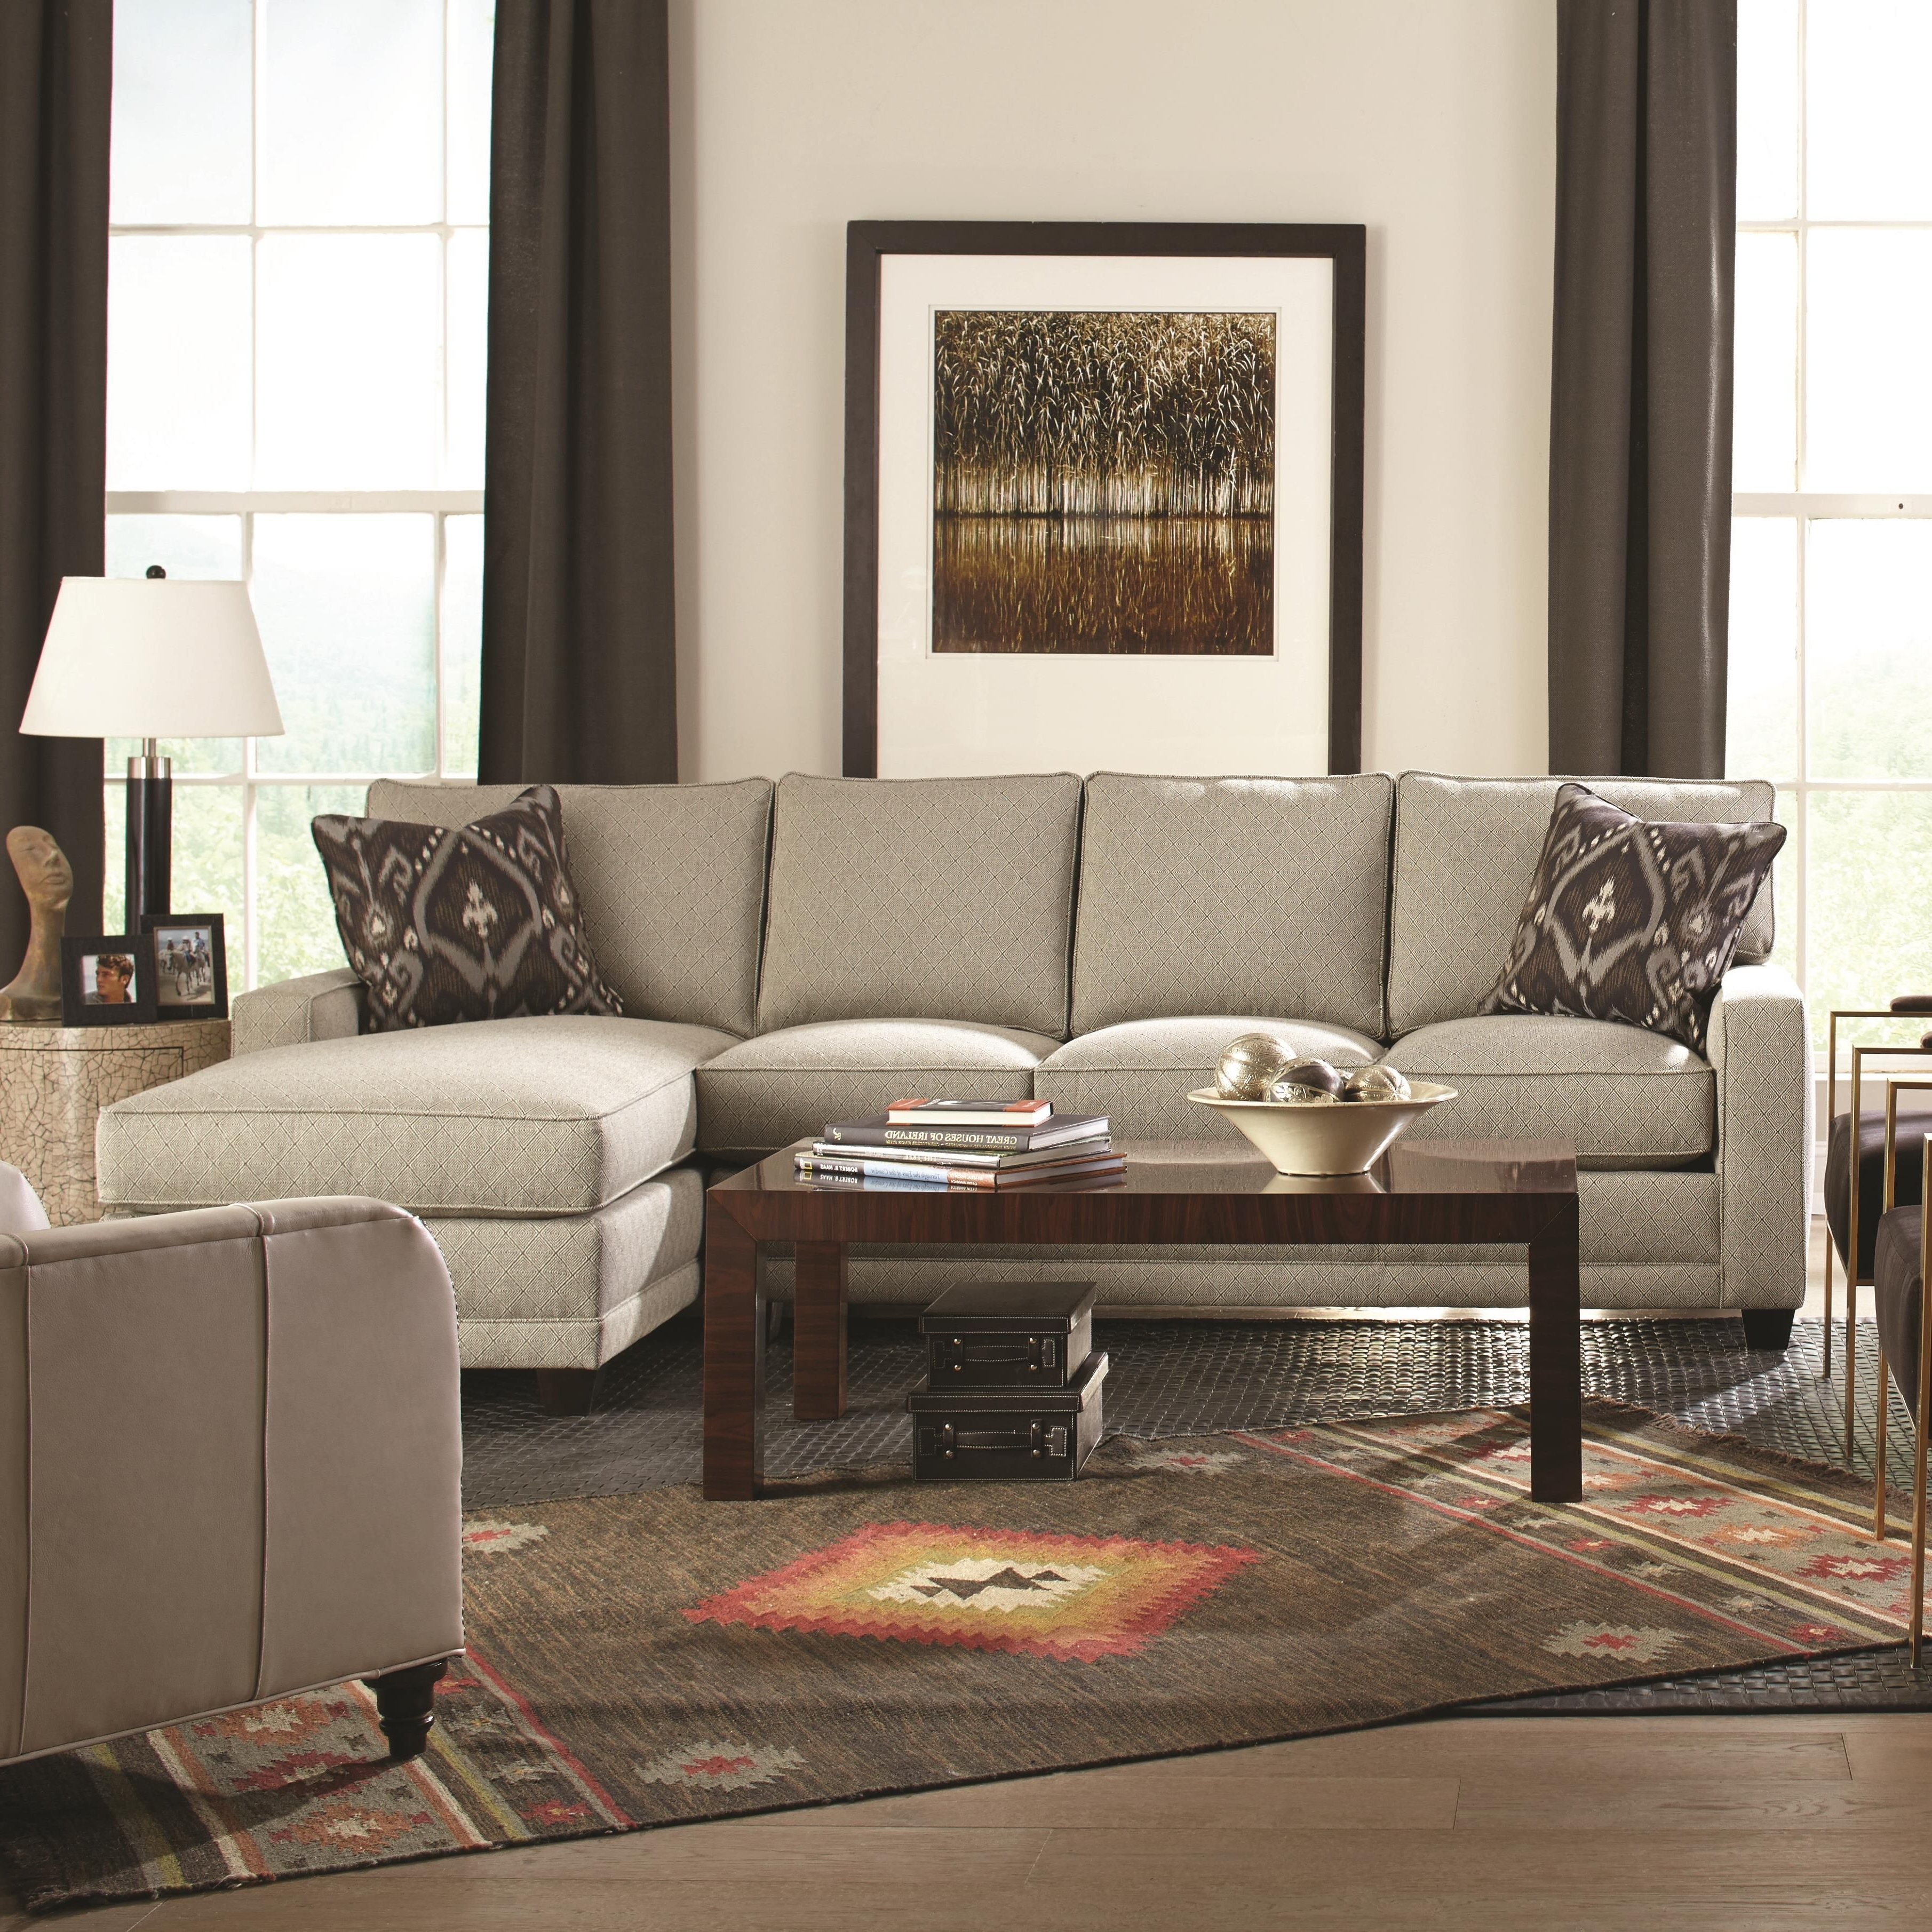 My Style Contemporary Sectional Sofa With Chaiserowe (View 15 of 15)